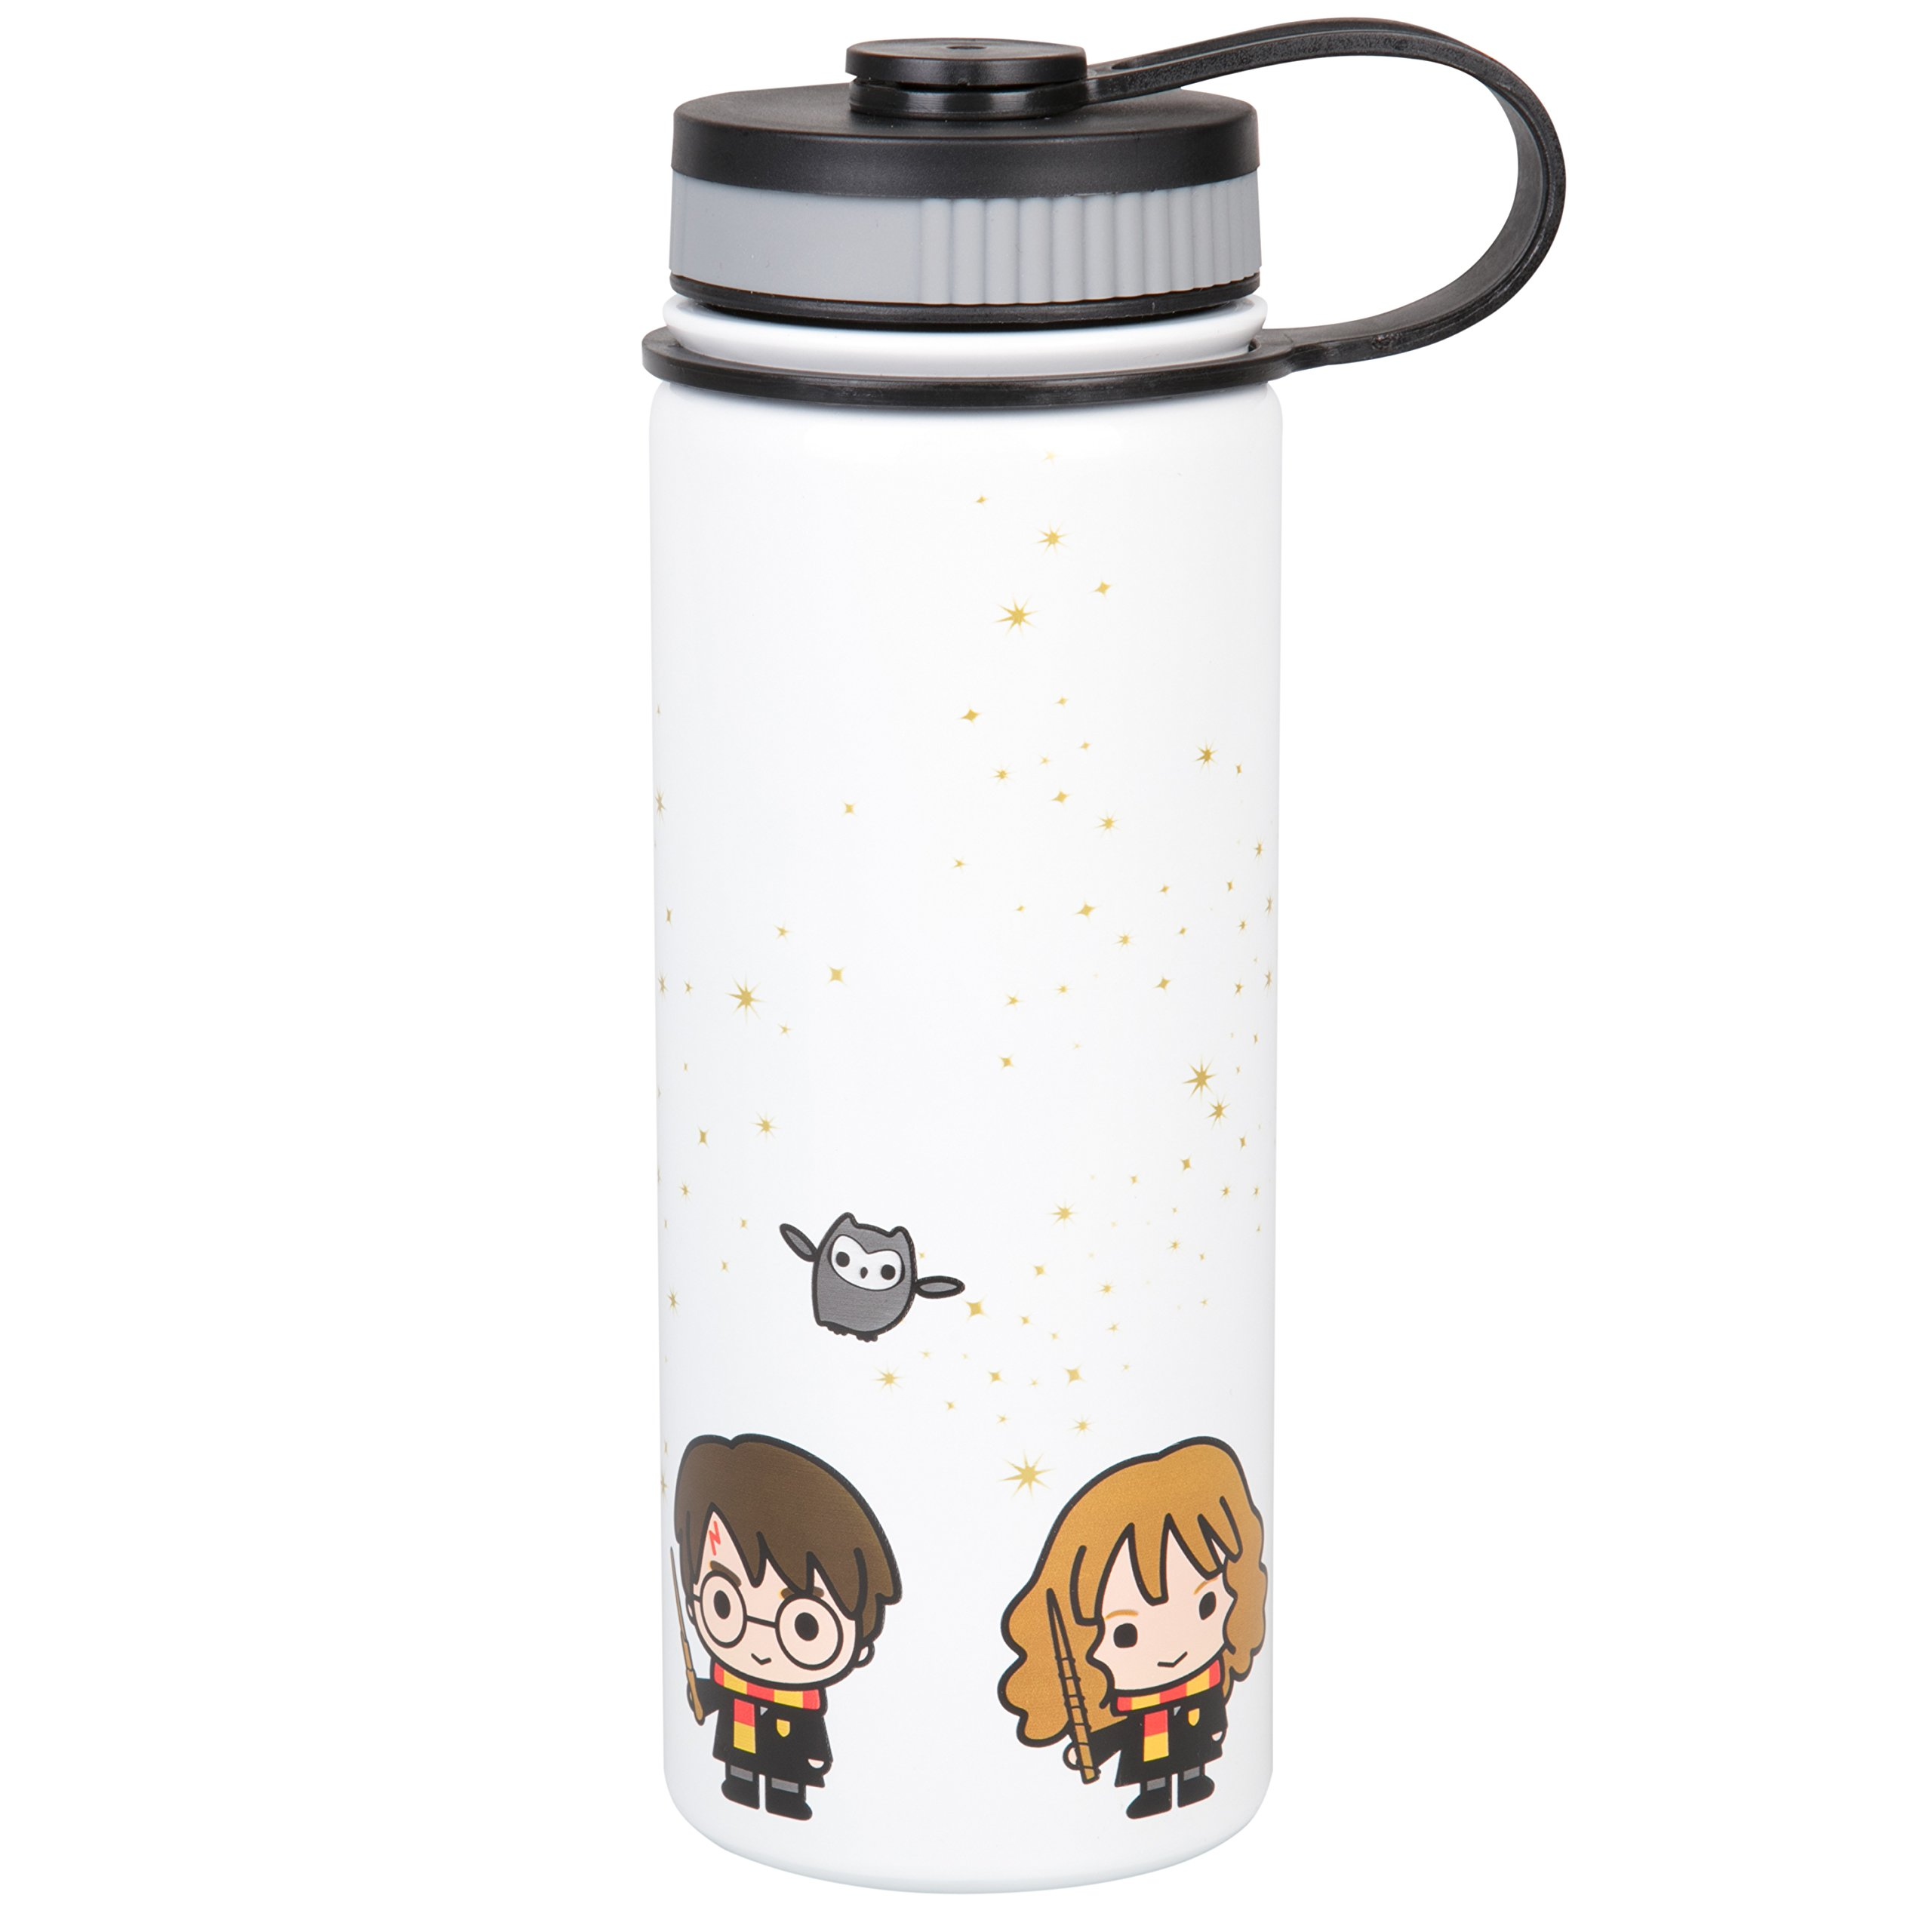 Harry Potter Stainless Steel Water Bottle - With Harry, Ron and Hermione Character Design - 550ml